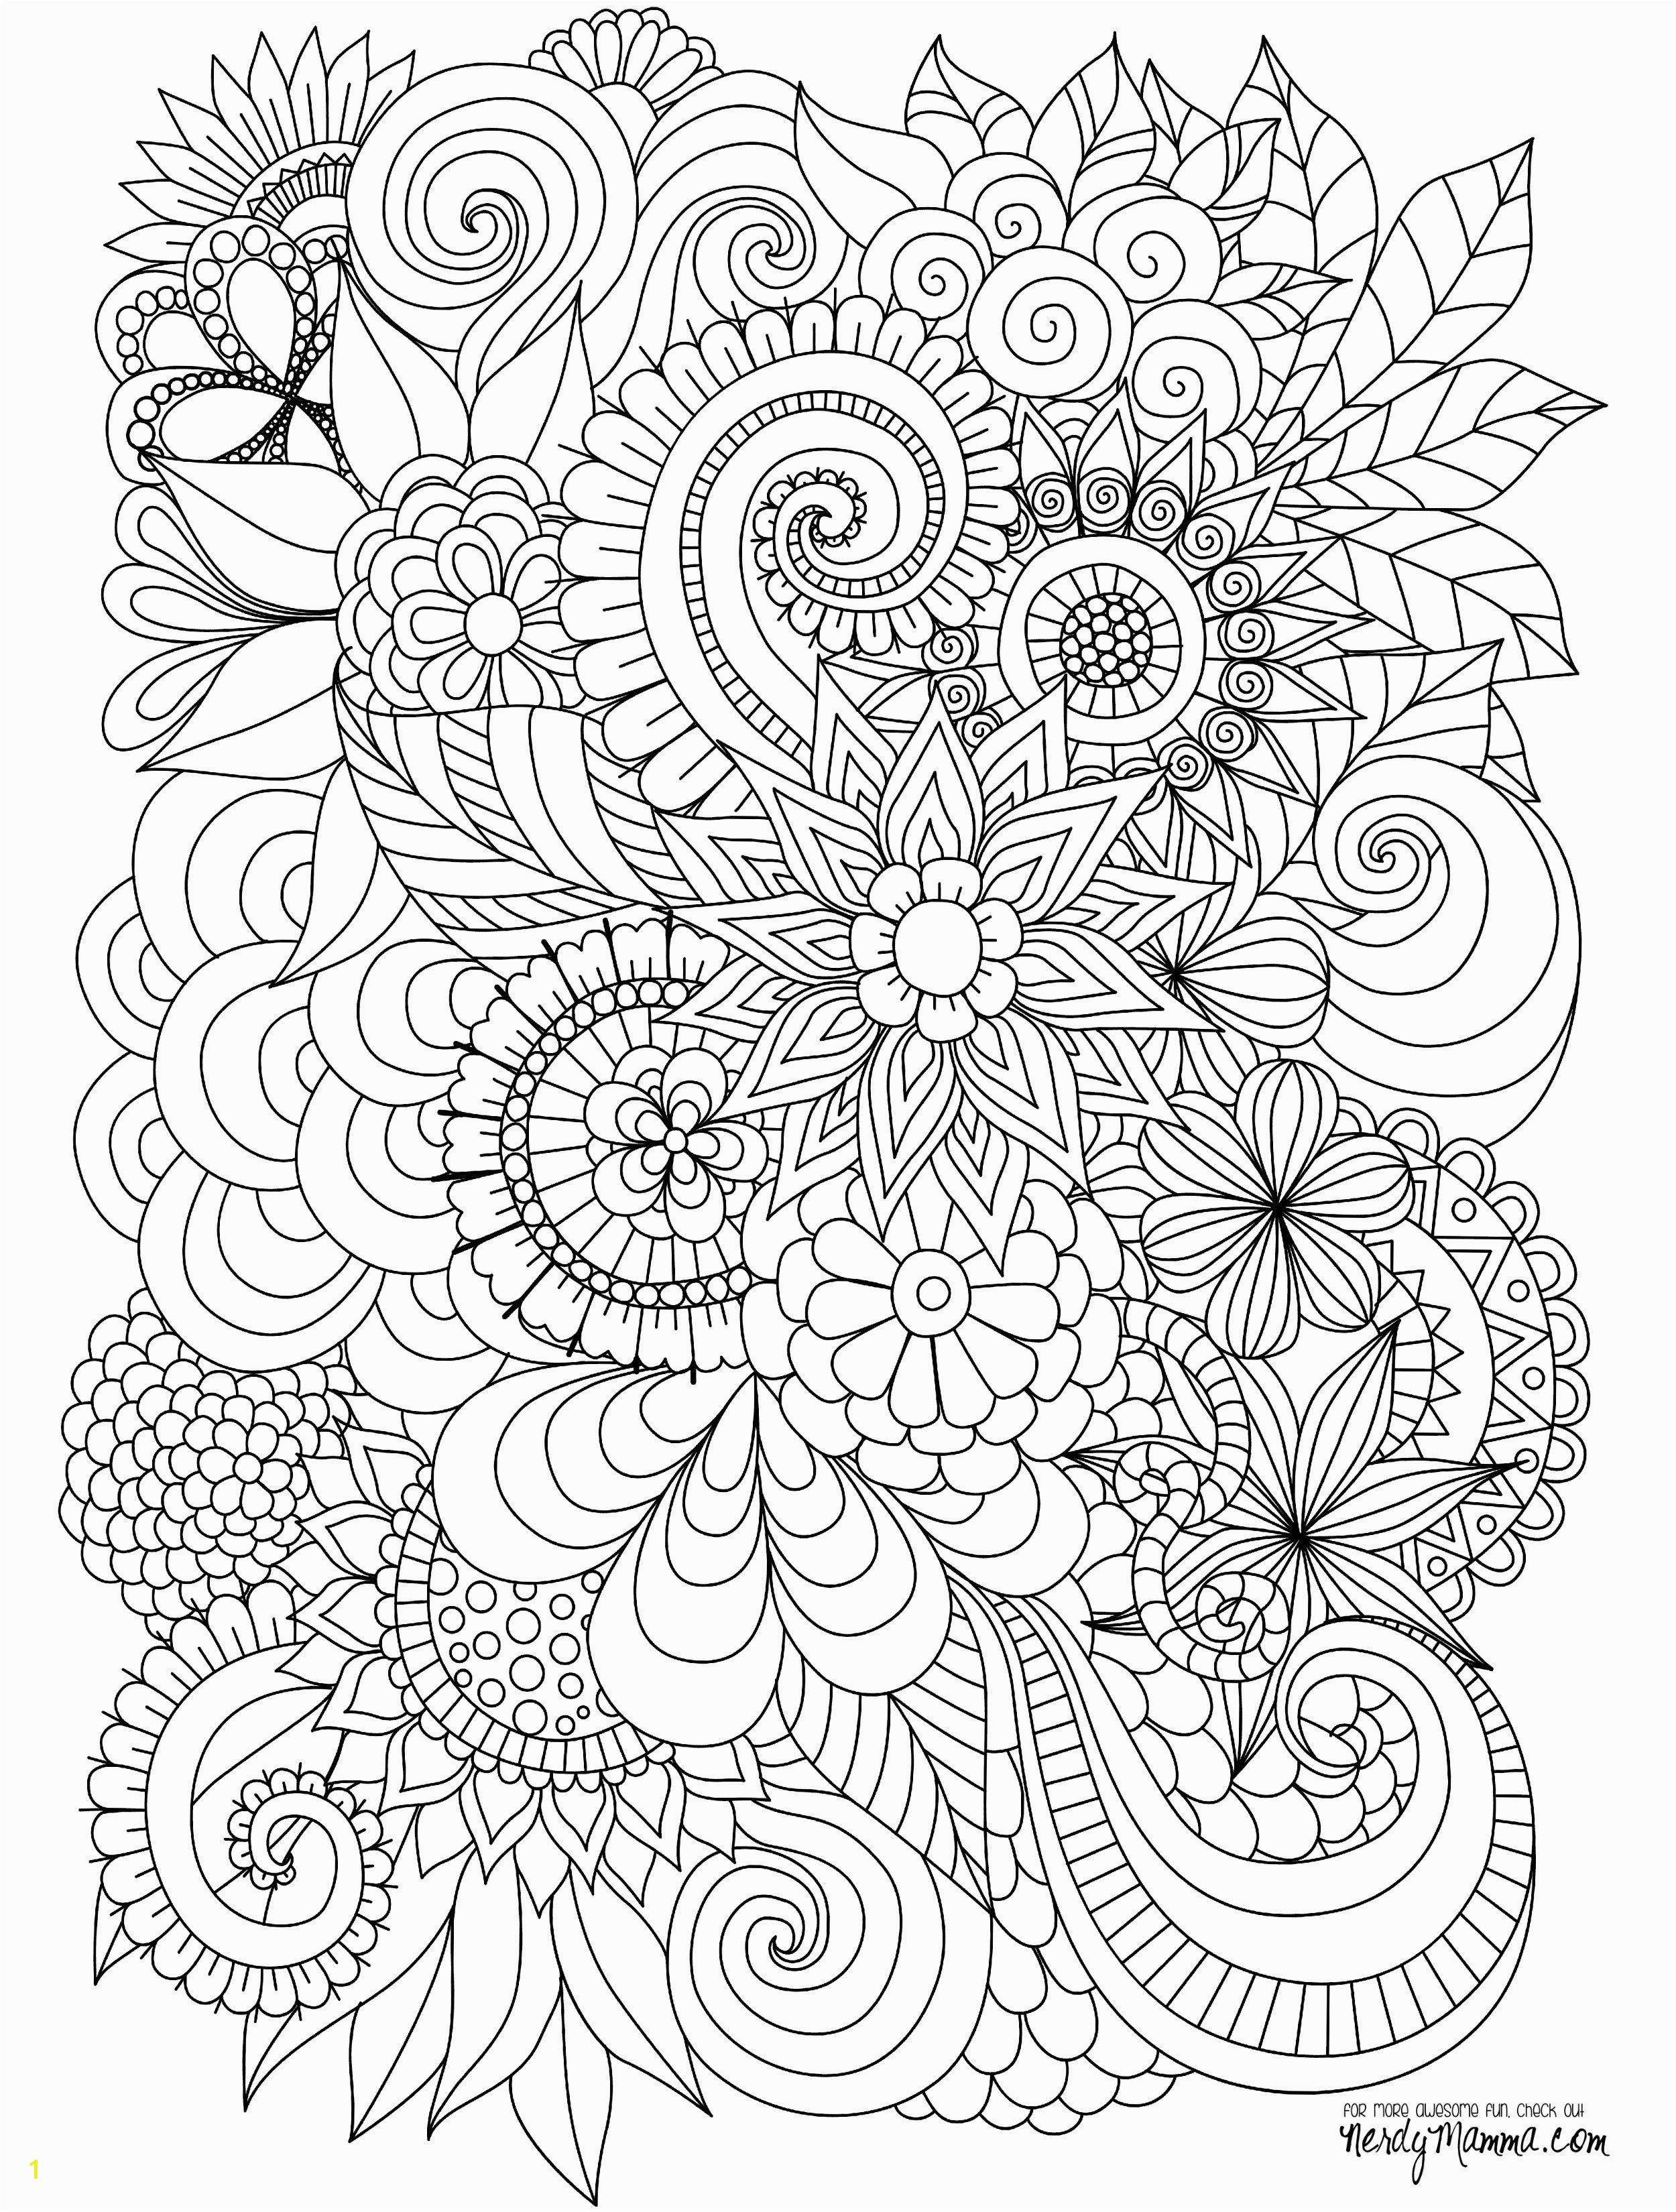 Flower Coloring Pages Adults Flowers Abstract Coloring Pages Colouring Adult Detailed Advanced